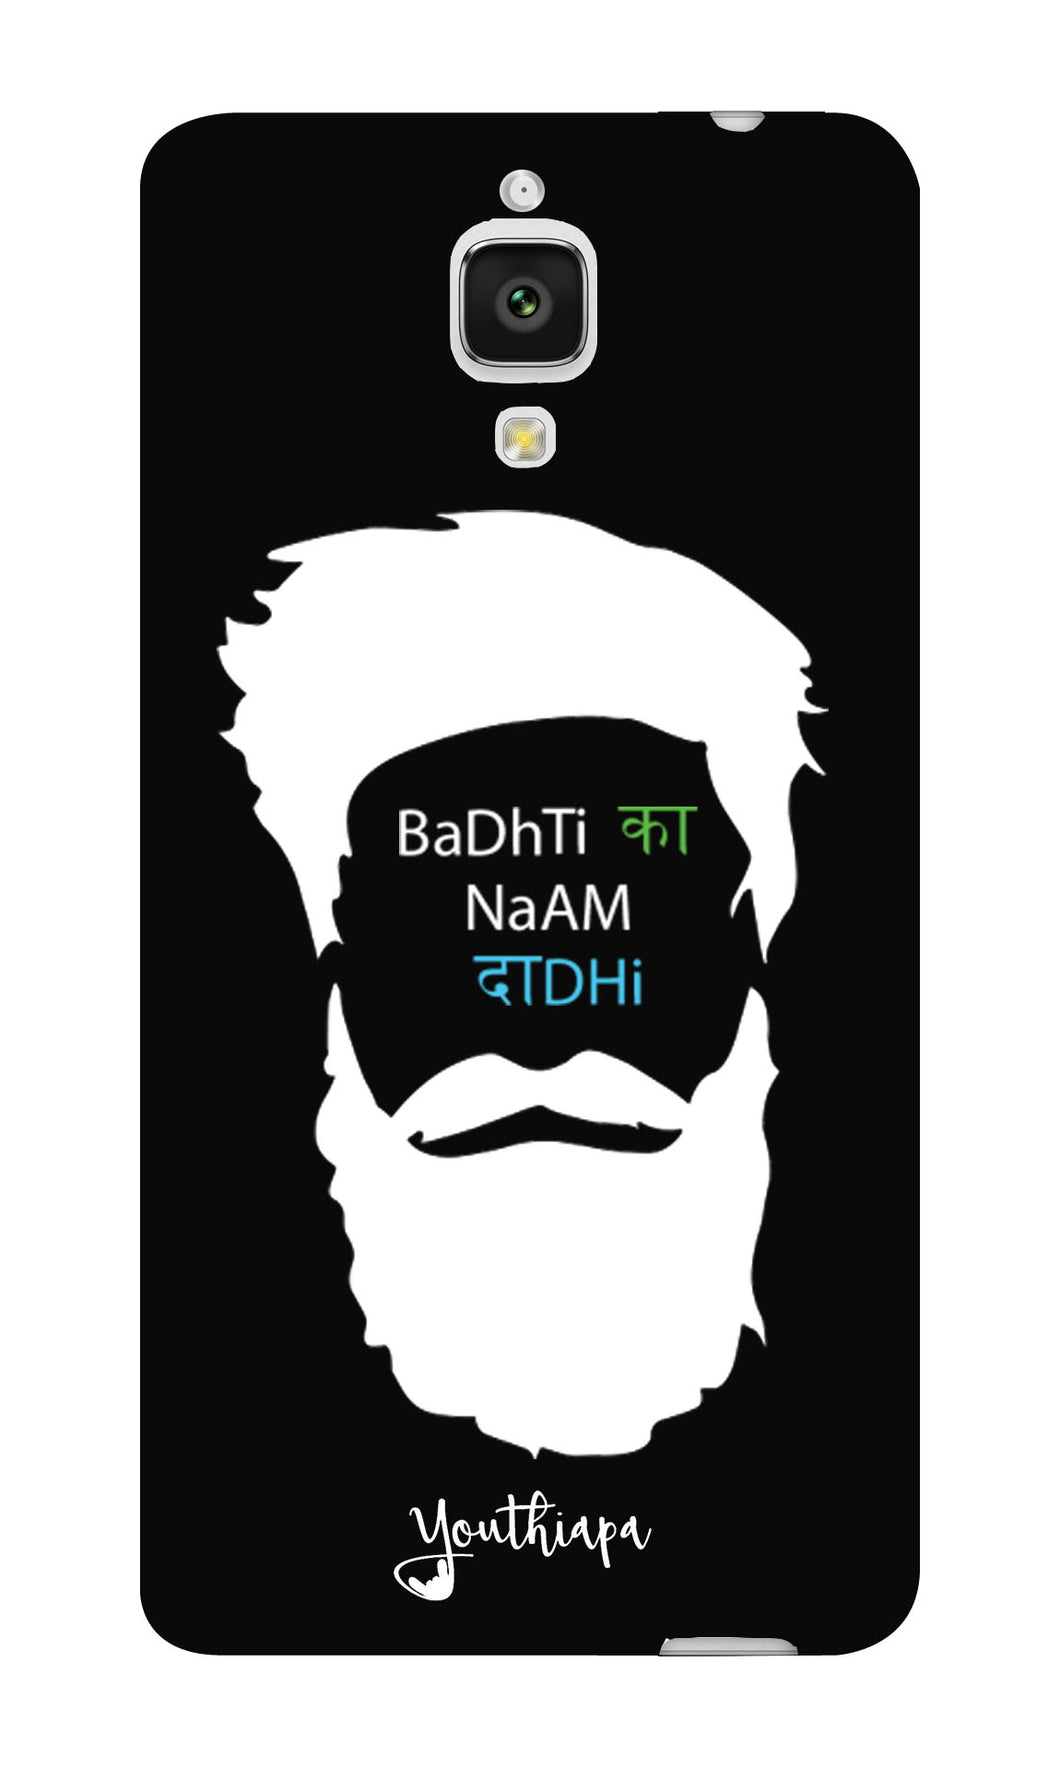 The Beard Edition for XIAOMI MI 4